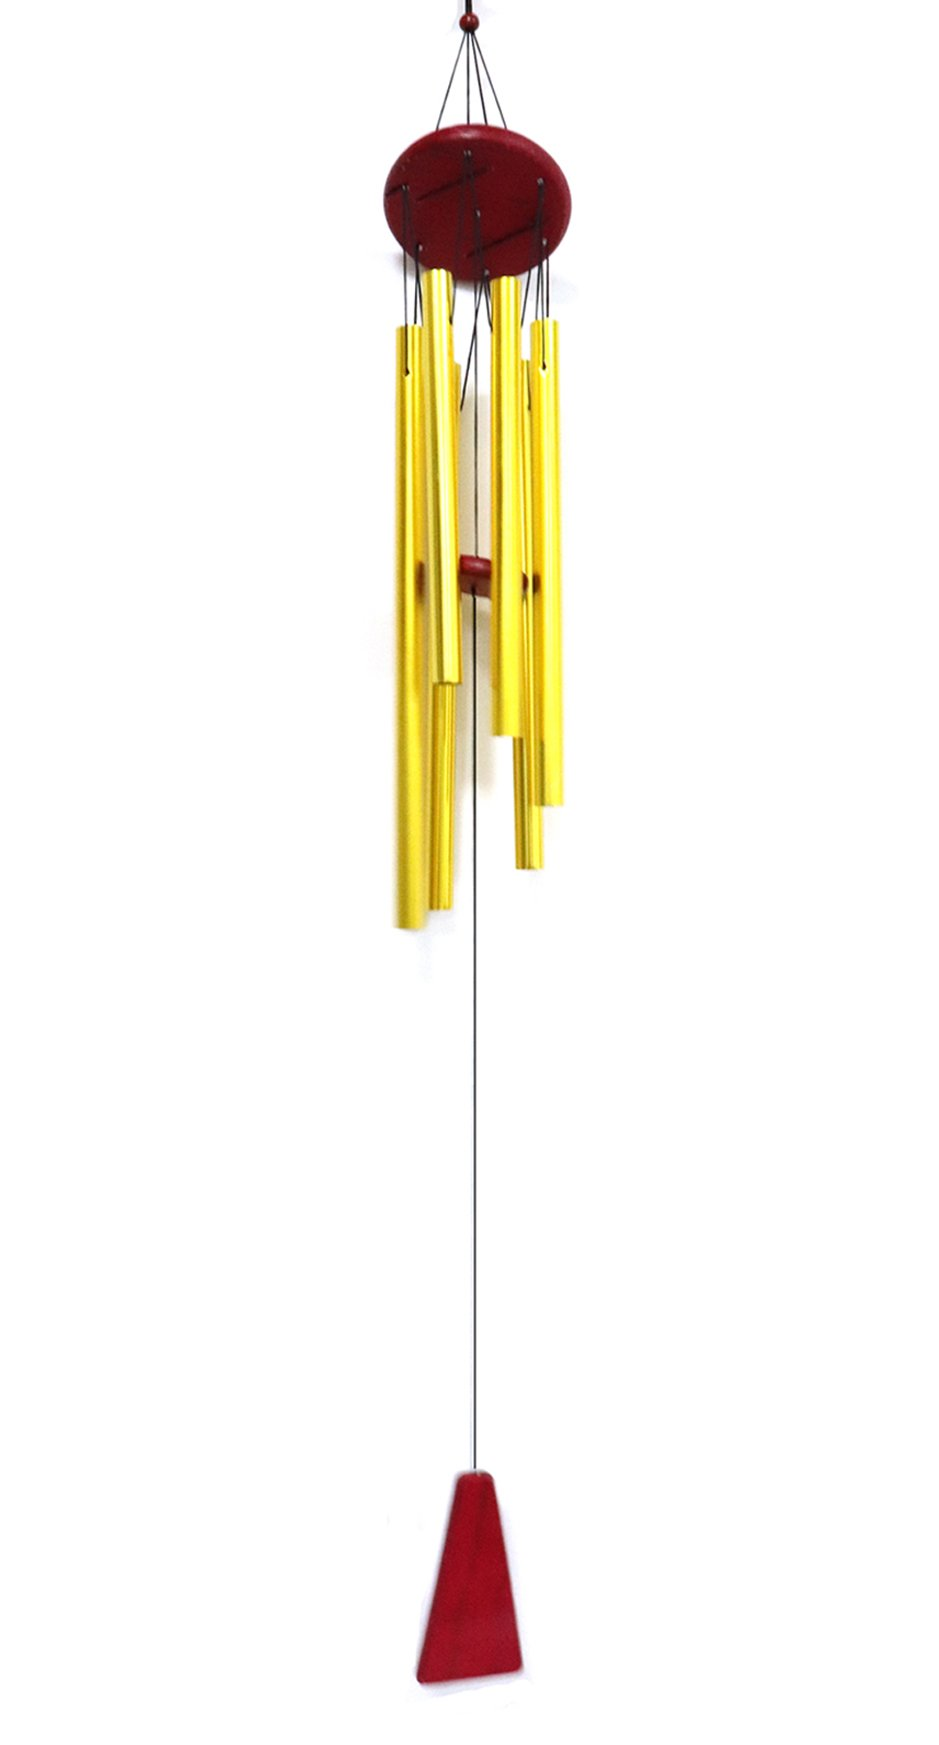 Yootop Amazing Grace Golden Outdoor and Indoor Wind bell/Wind chimes Beautiful Decor for Garden Balcony (Gold)